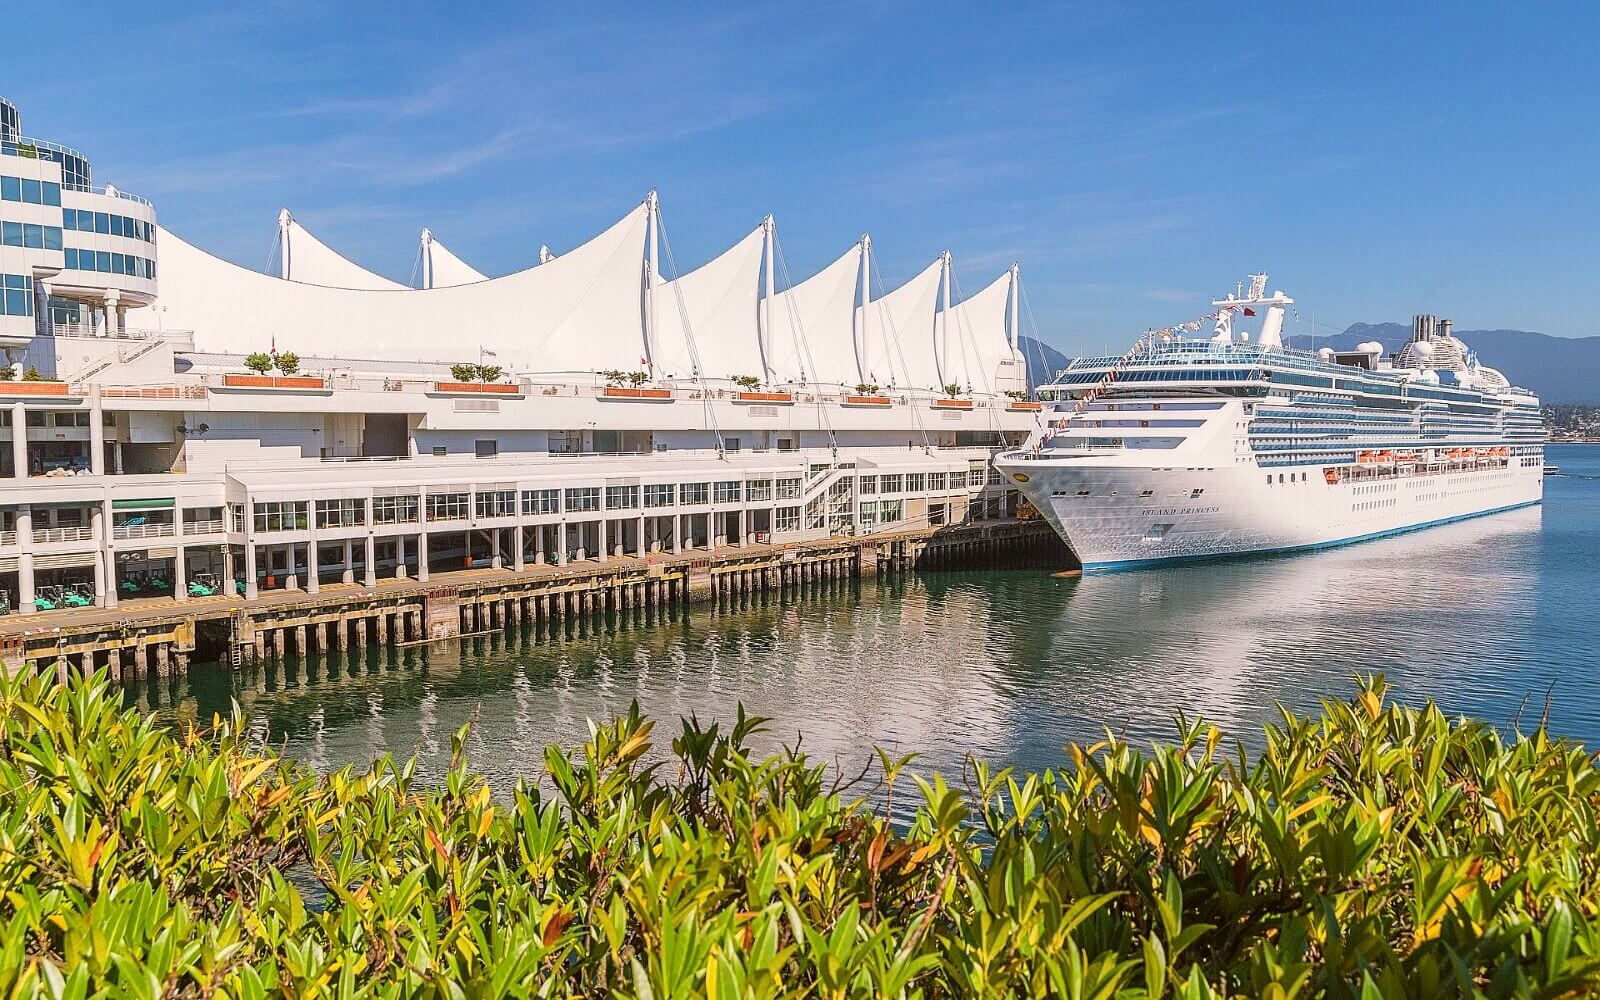 A cruise ship docks at Canada Place, Vancouver